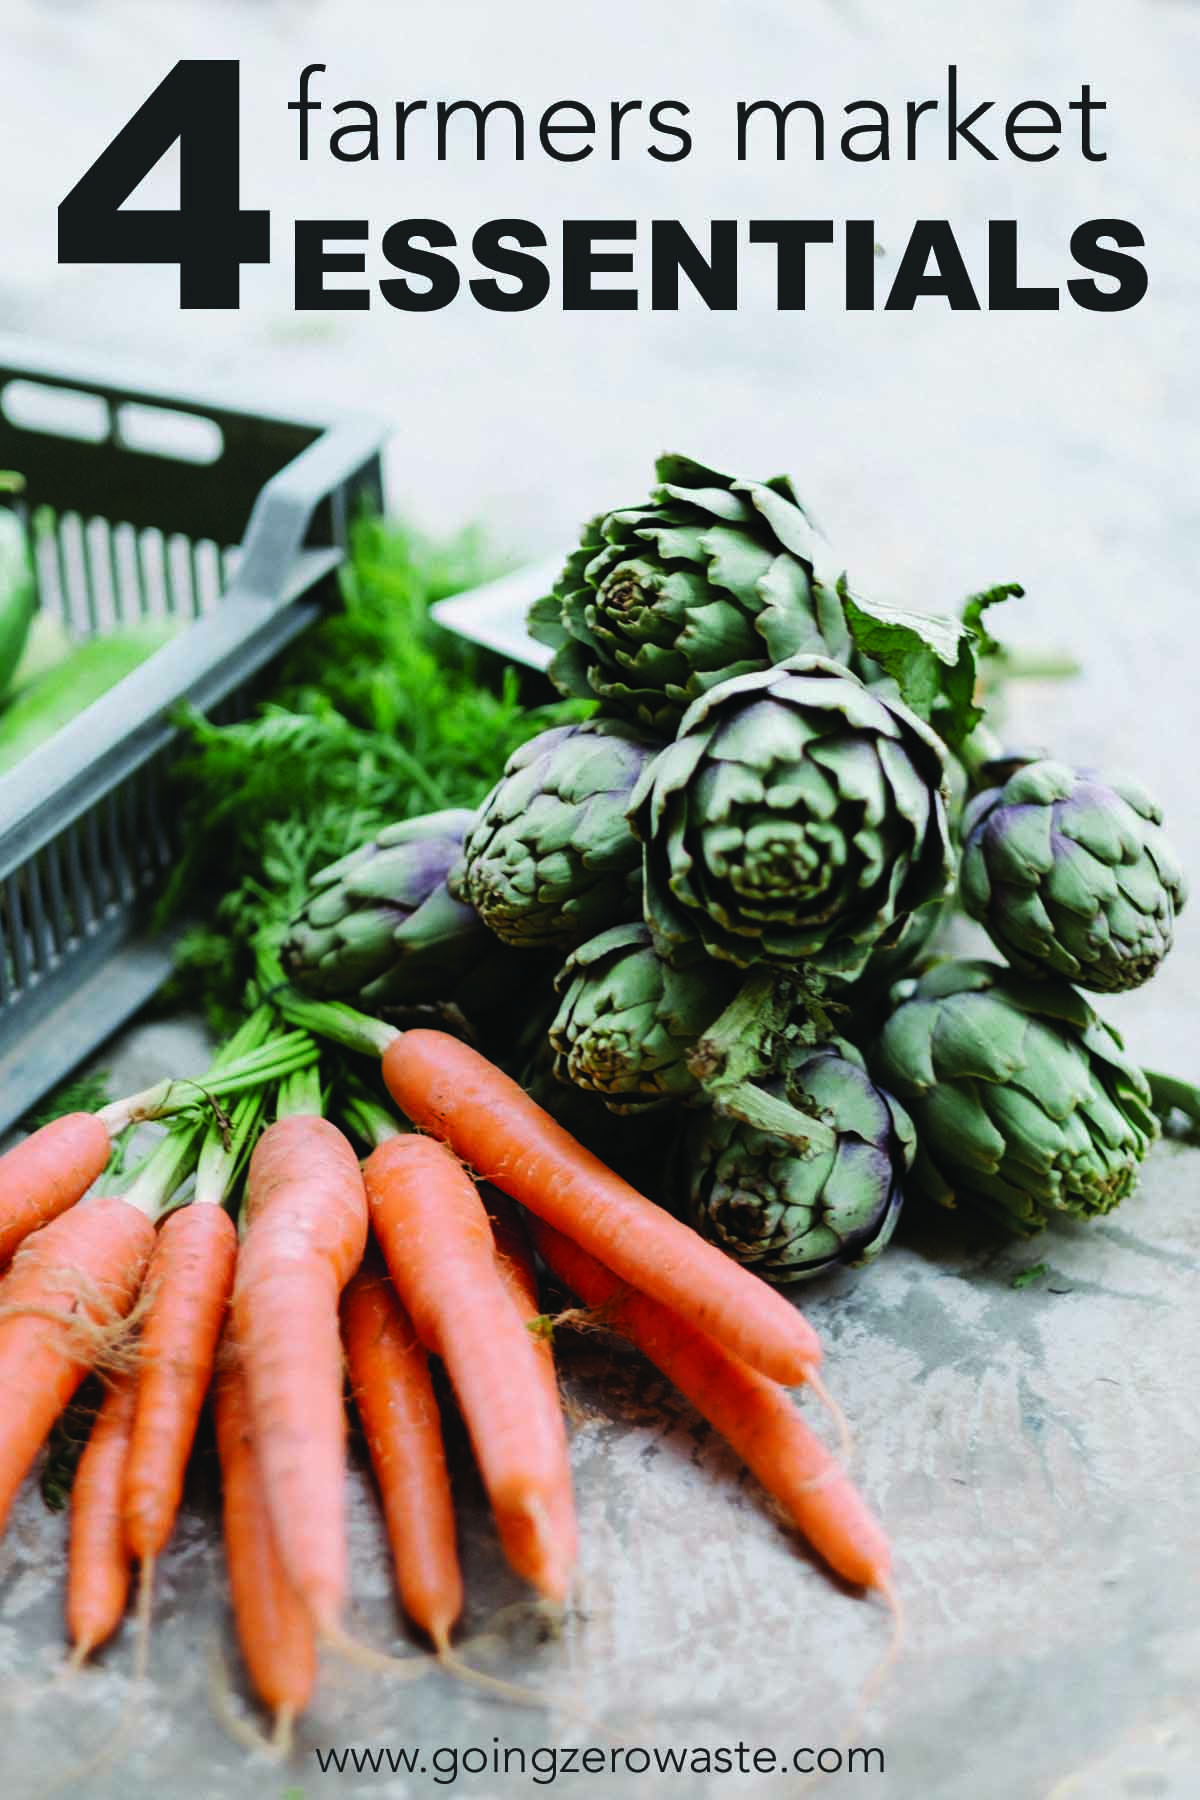 Four farmers market essentials from www.goingzerowaste.com #farmersmarket #zerowaste #groceries